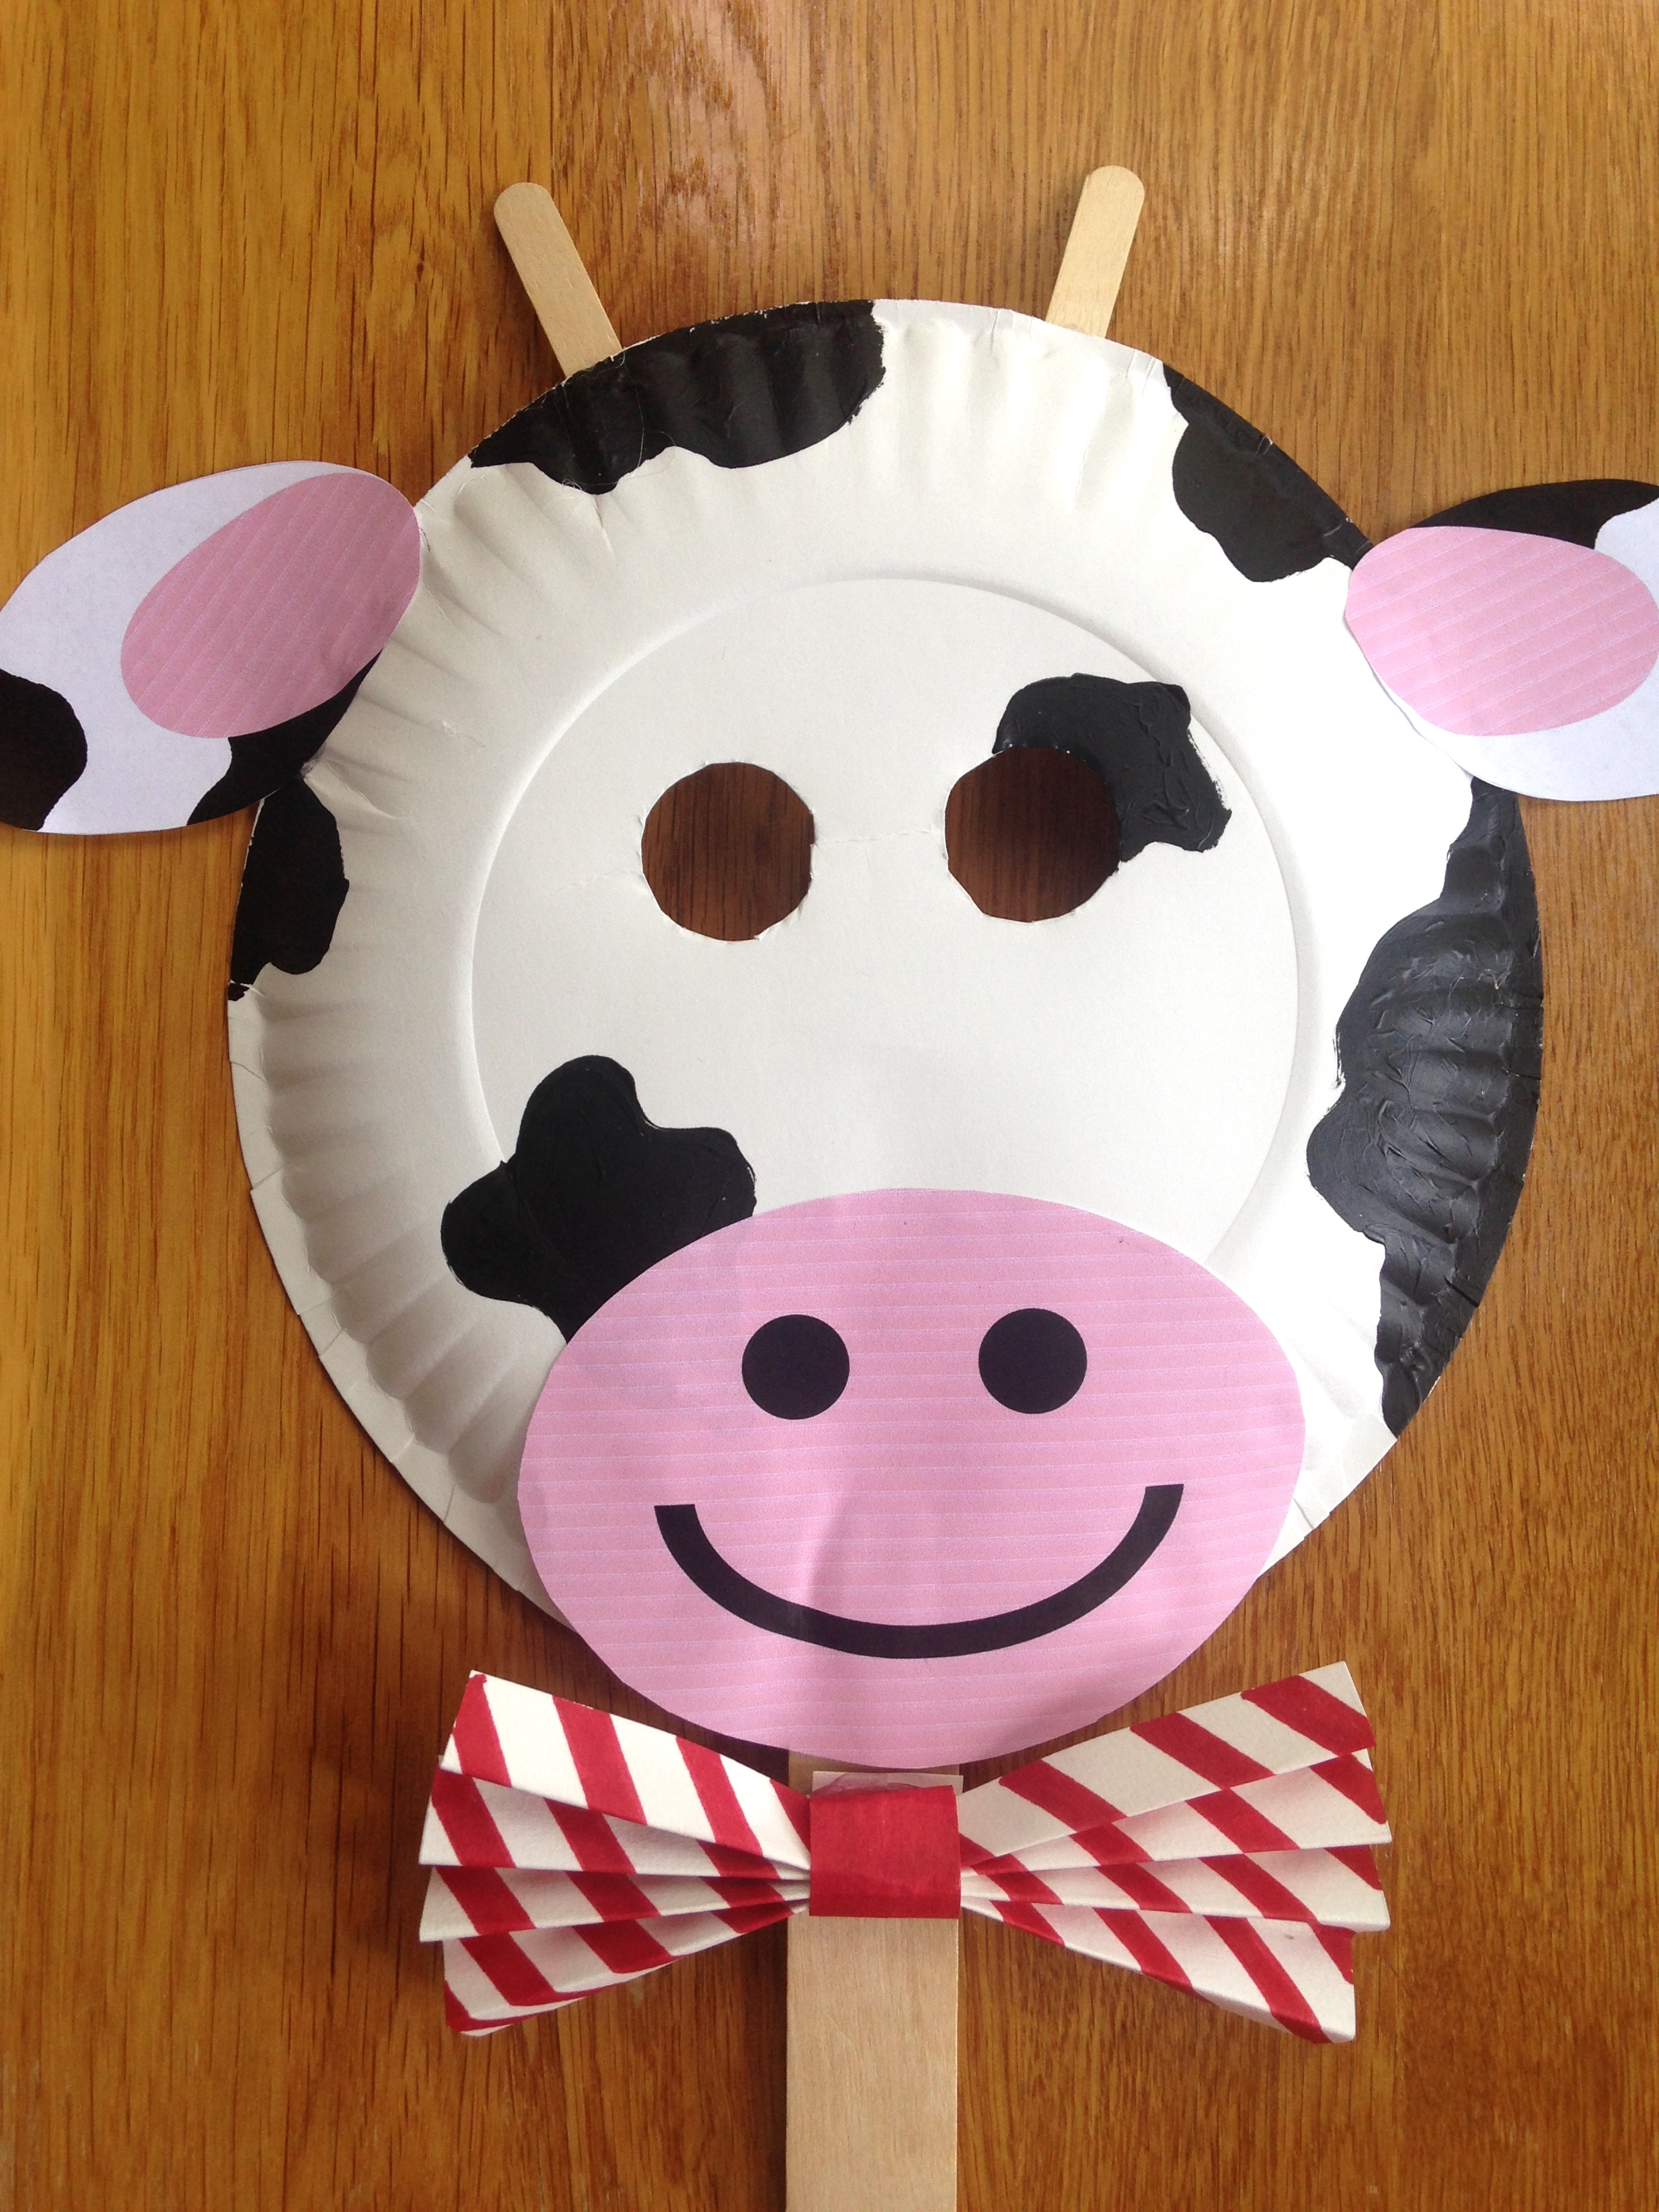 image about Cow Appreciation Day Printable Costume known as Chick-fil-A Cow Working day Paper Plate Cow Masks With Absolutely free